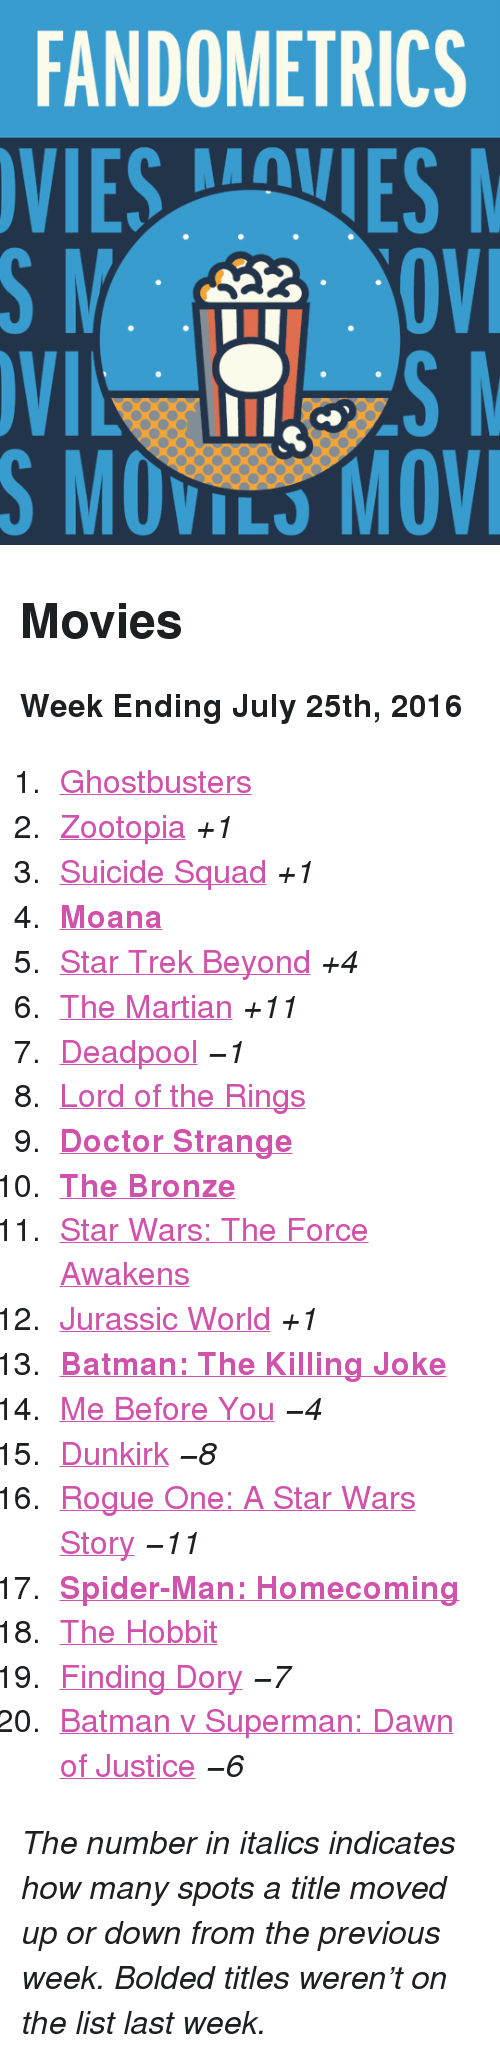 "killing joke: FANDOMETRICS  VIESVES  S MOVILS MOV <h2>Movies</h2><p><b>Week Ending July 25th, 2016</b></p><ol><li><a href=""http://www.tumblr.com/search/ghostbusters"">Ghostbusters</a></li>  <li><a href=""http://www.tumblr.com/search/zootopia"">Zootopia</a> <i>+1</i></li>  <li><a href=""http://www.tumblr.com/search/suicide%20squad"">Suicide Squad</a> <i>+1</i></li>  <li><b><a href=""http://www.tumblr.com/search/moana"">Moana</a> </b></li>  <li><a href=""http://www.tumblr.com/search/star%20trek%20beyond"">Star Trek Beyond</a> <i>+4</i></li>  <li><a href=""http://www.tumblr.com/search/the%20martian"">The Martian</a> <i>+11</i></li>  <li><a href=""http://www.tumblr.com/search/deadpool"">Deadpool</a> <i>−1</i></li>  <li><a href=""http://www.tumblr.com/search/lotr"">Lord of the Rings</a></li>  <li><a href=""http://www.tumblr.com/search/doctor%20strange""><b>Doctor Strange</b></a></li>  <li><a href=""http://www.tumblr.com/search/the%20bronze""><b>The Bronze</b></a></li>  <li><a href=""http://www.tumblr.com/search/the%20force%20awakens"">Star Wars: The Force Awakens</a></li>  <li><a href=""http://www.tumblr.com/search/jurassic%20world"">Jurassic World</a> <i>+1</i></li>  <li><a href=""http://www.tumblr.com/search/the%20killing%20joke""><b>Batman: The Killing Joke</b></a></li>  <li><a href=""http://www.tumblr.com/search/me%20before%20you"">Me Before You</a> <i>−4</i></li>  <li><a href=""http://www.tumblr.com/search/dunkirk"">Dunkirk</a> <i>−8</i></li>  <li><a href=""http://www.tumblr.com/search/rogue%20one"">Rogue One: A Star Wars Story</a> <i>−11</i></li>  <li><a href=""http://www.tumblr.com/search/spiderman%20homecoming""><b>Spider-Man: Homecoming</b></a></li>  <li><a href=""http://www.tumblr.com/search/the%20hobbit"">The Hobbit</a></li>  <li><a href=""http://www.tumblr.com/search/finding%20dory"">Finding Dory</a> <i>−7</i></li>  <li><a href=""http://www.tumblr.com/search/batman%20v%20superman"">Batman v Superman: Dawn of Justice</a> <i>−6</i></li></ol><p><i>The number in italics indicates how many spots a title moved up or down from the previous week. Bolded titles weren't on the list last week.</i></p>"